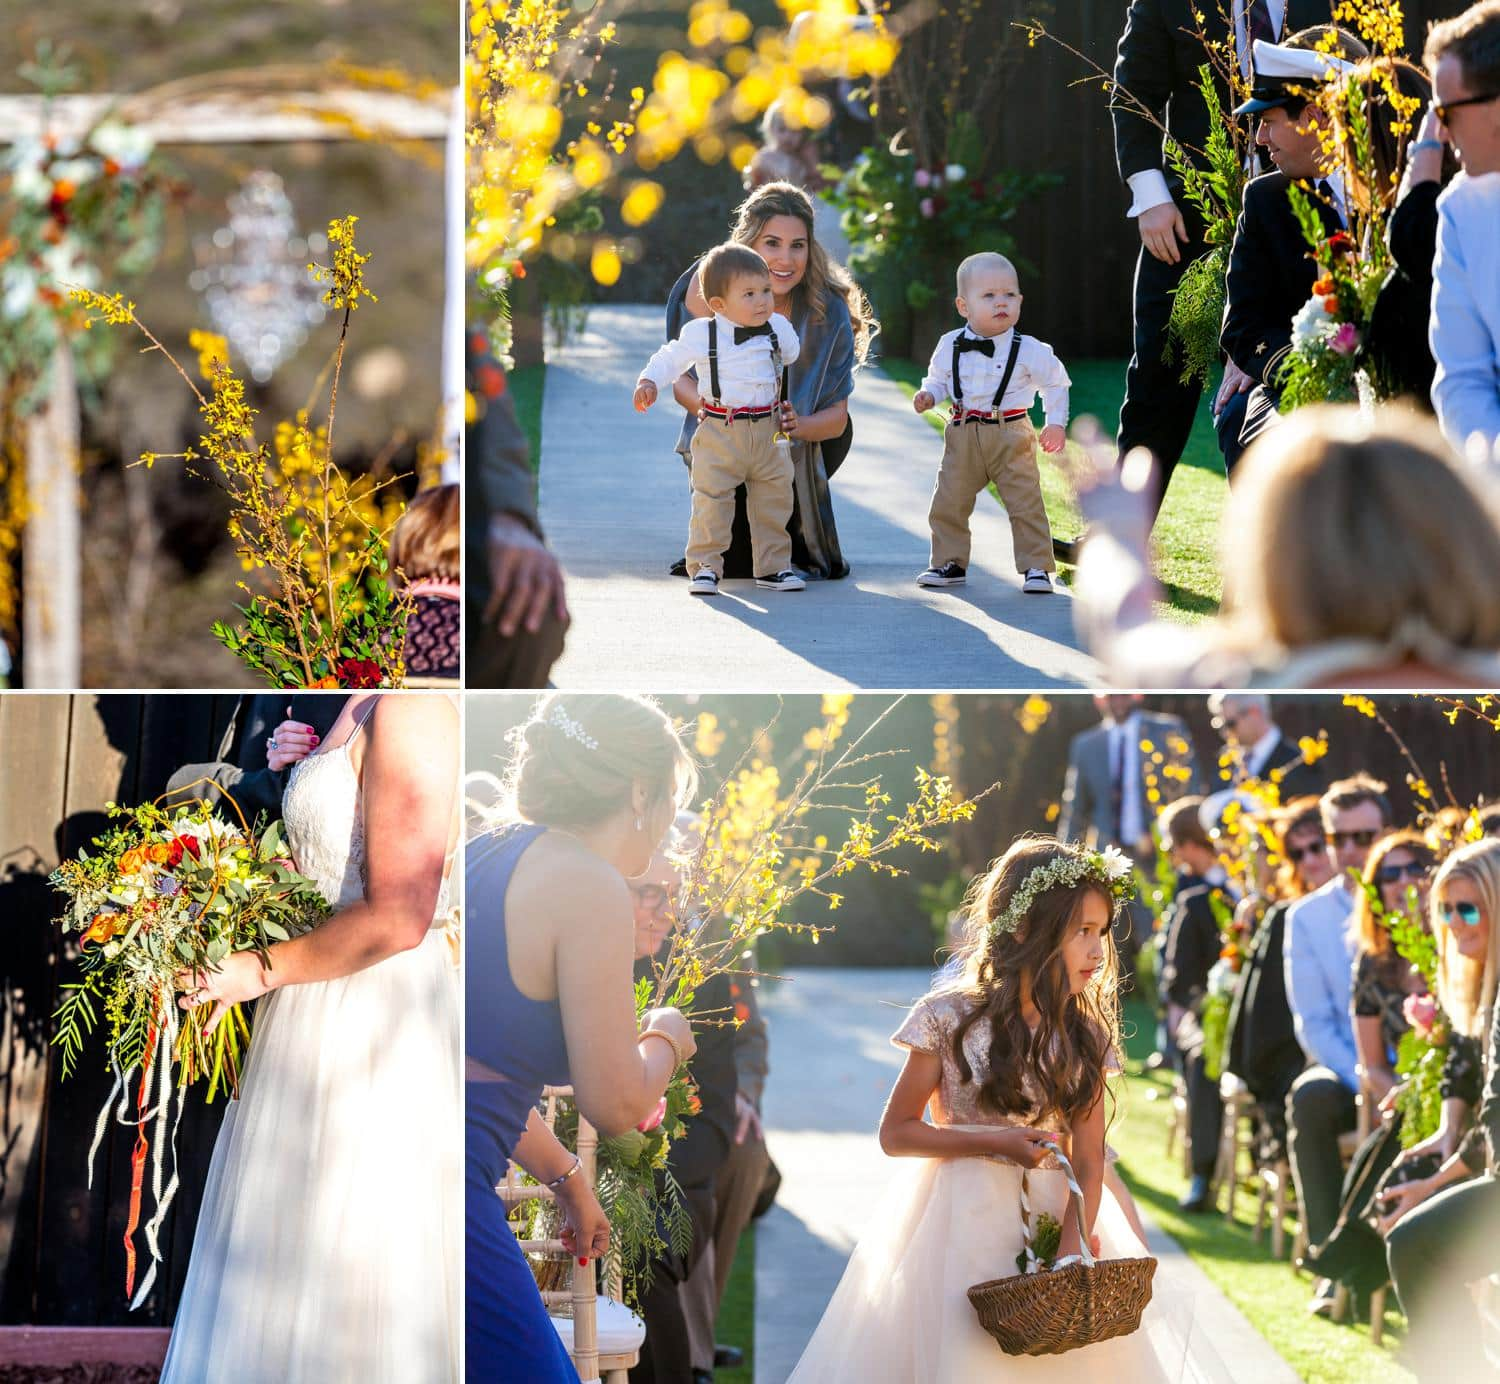 Yellow wedding flowers at ceremony site and ring bearers in suspenders and bow ties.